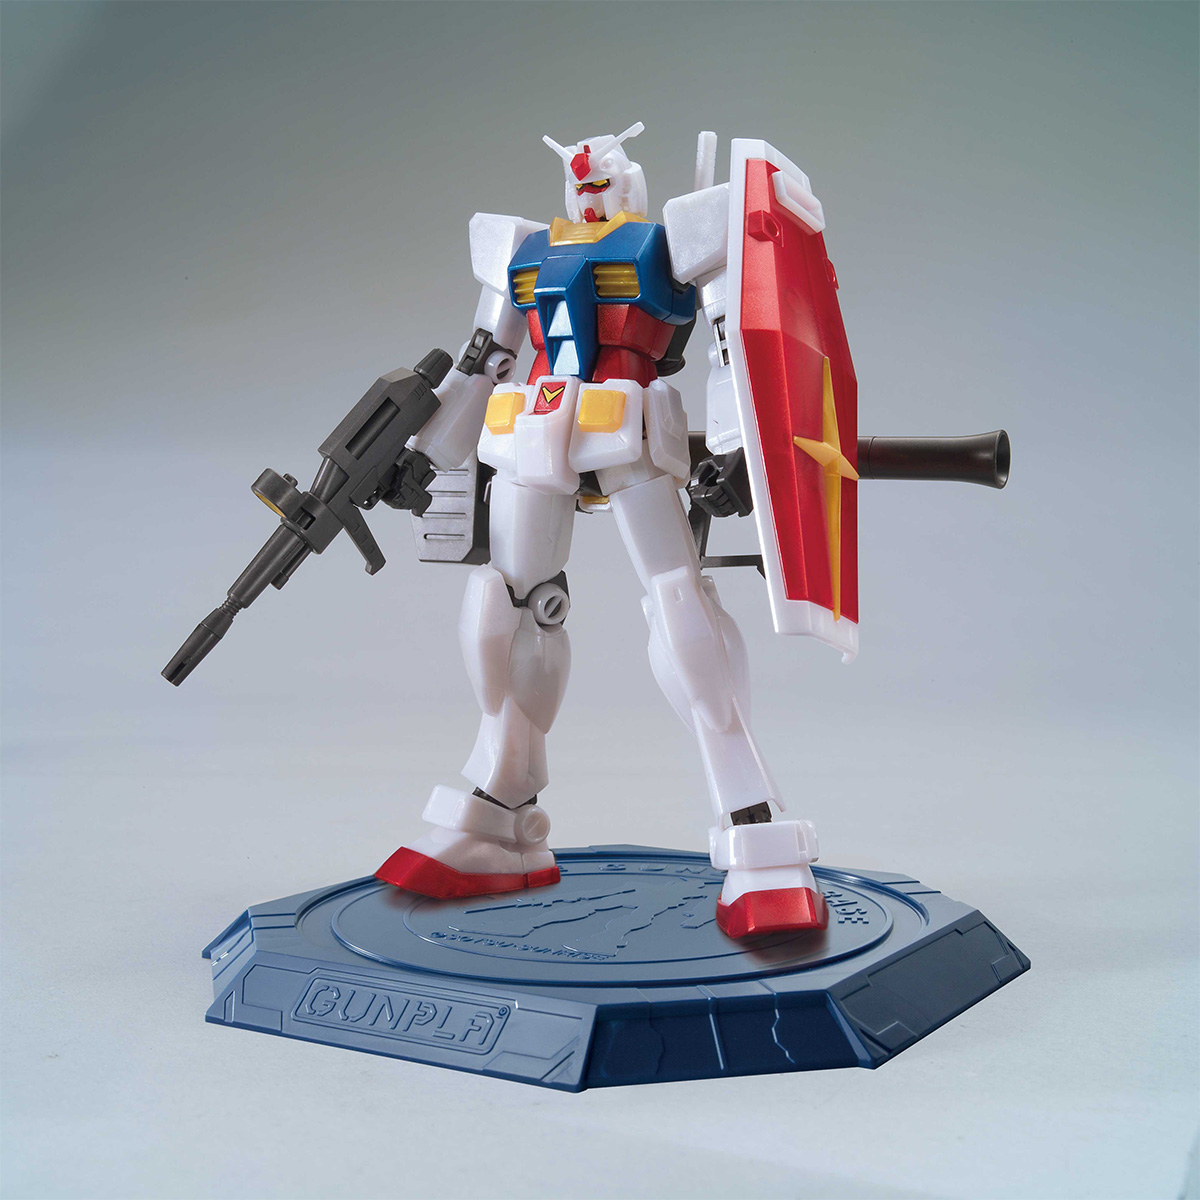 HG 1/144 THE GUNDAM BASE LIMITED RX-78-2 GUNDAM [METALLIC GLOSS INJECTION][Sep 2020 Delivery]